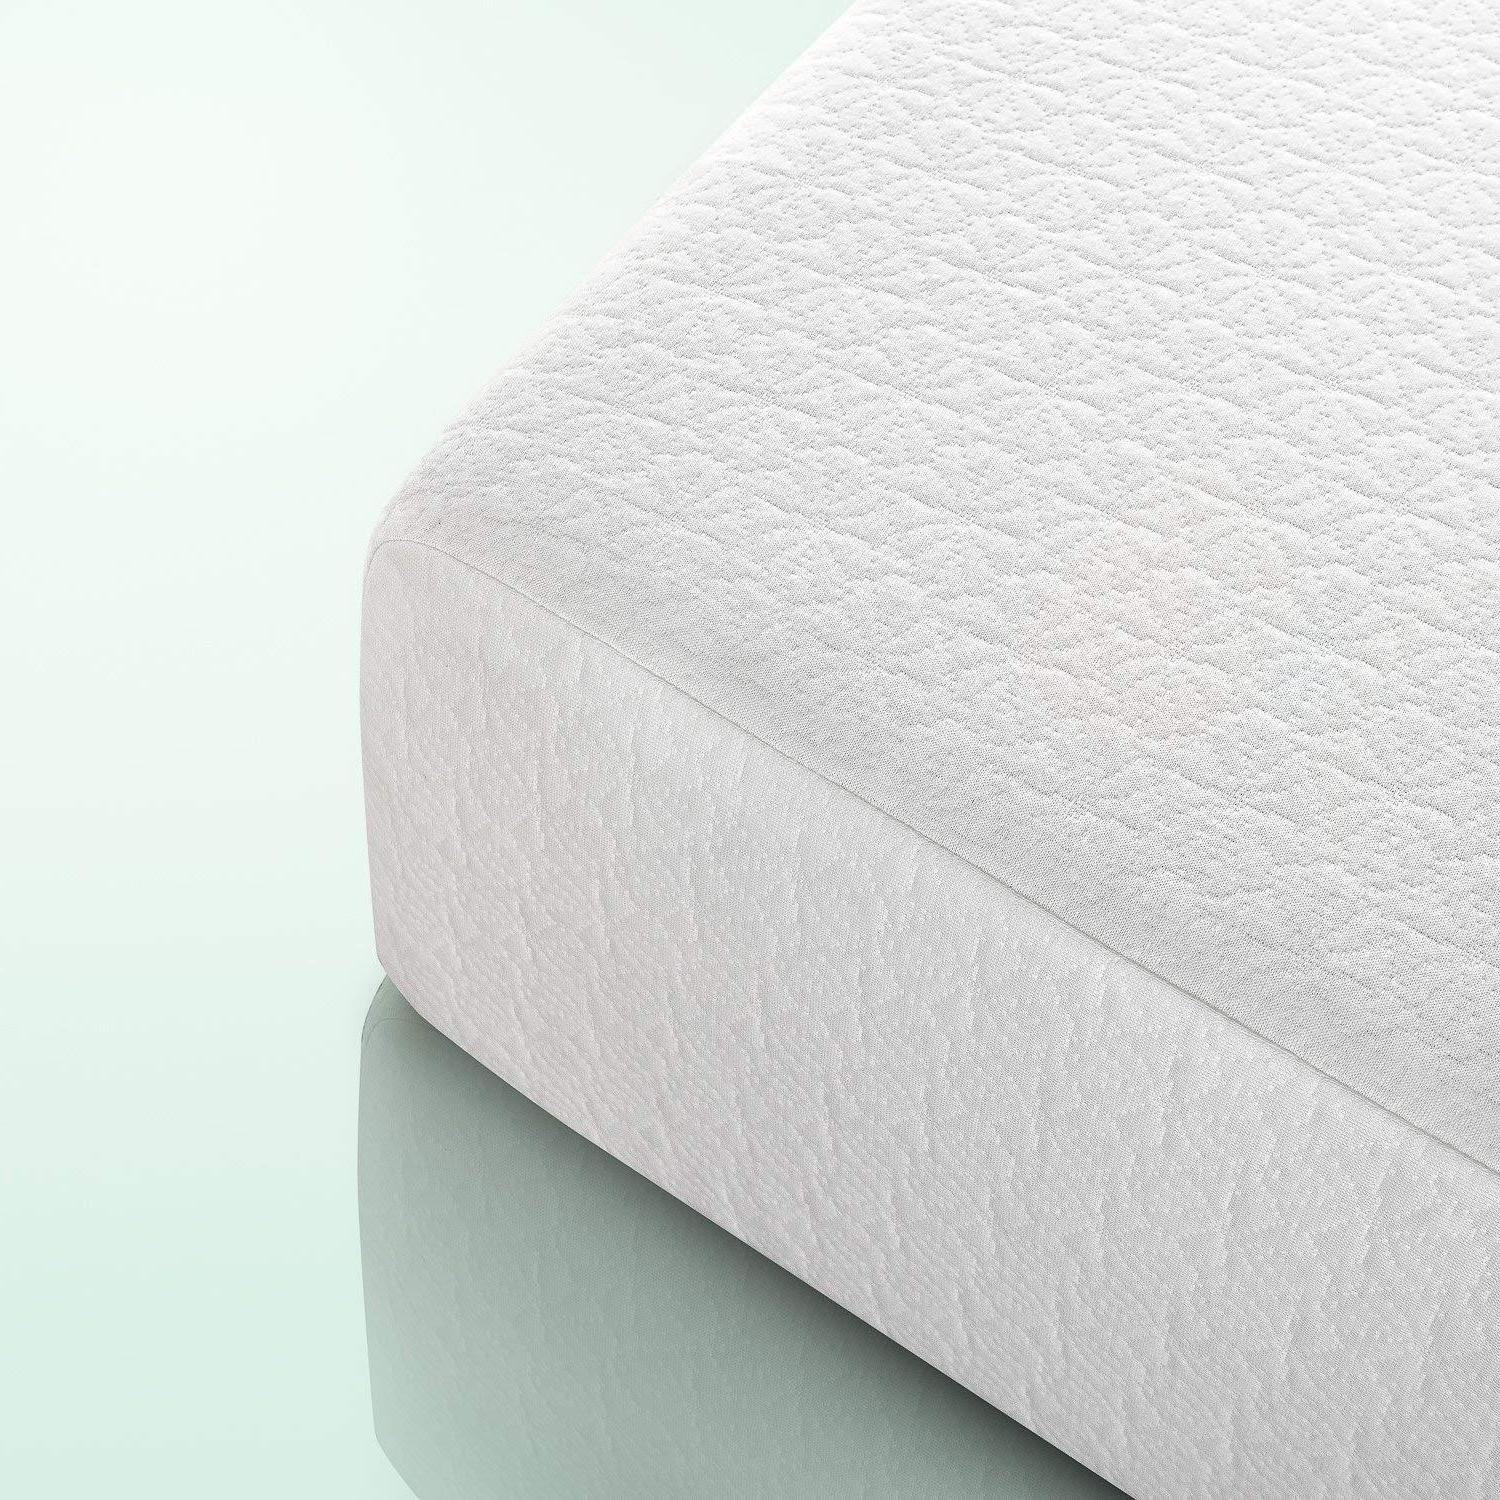 Zinus Comfort Foam 12 Inch Mattress, Full